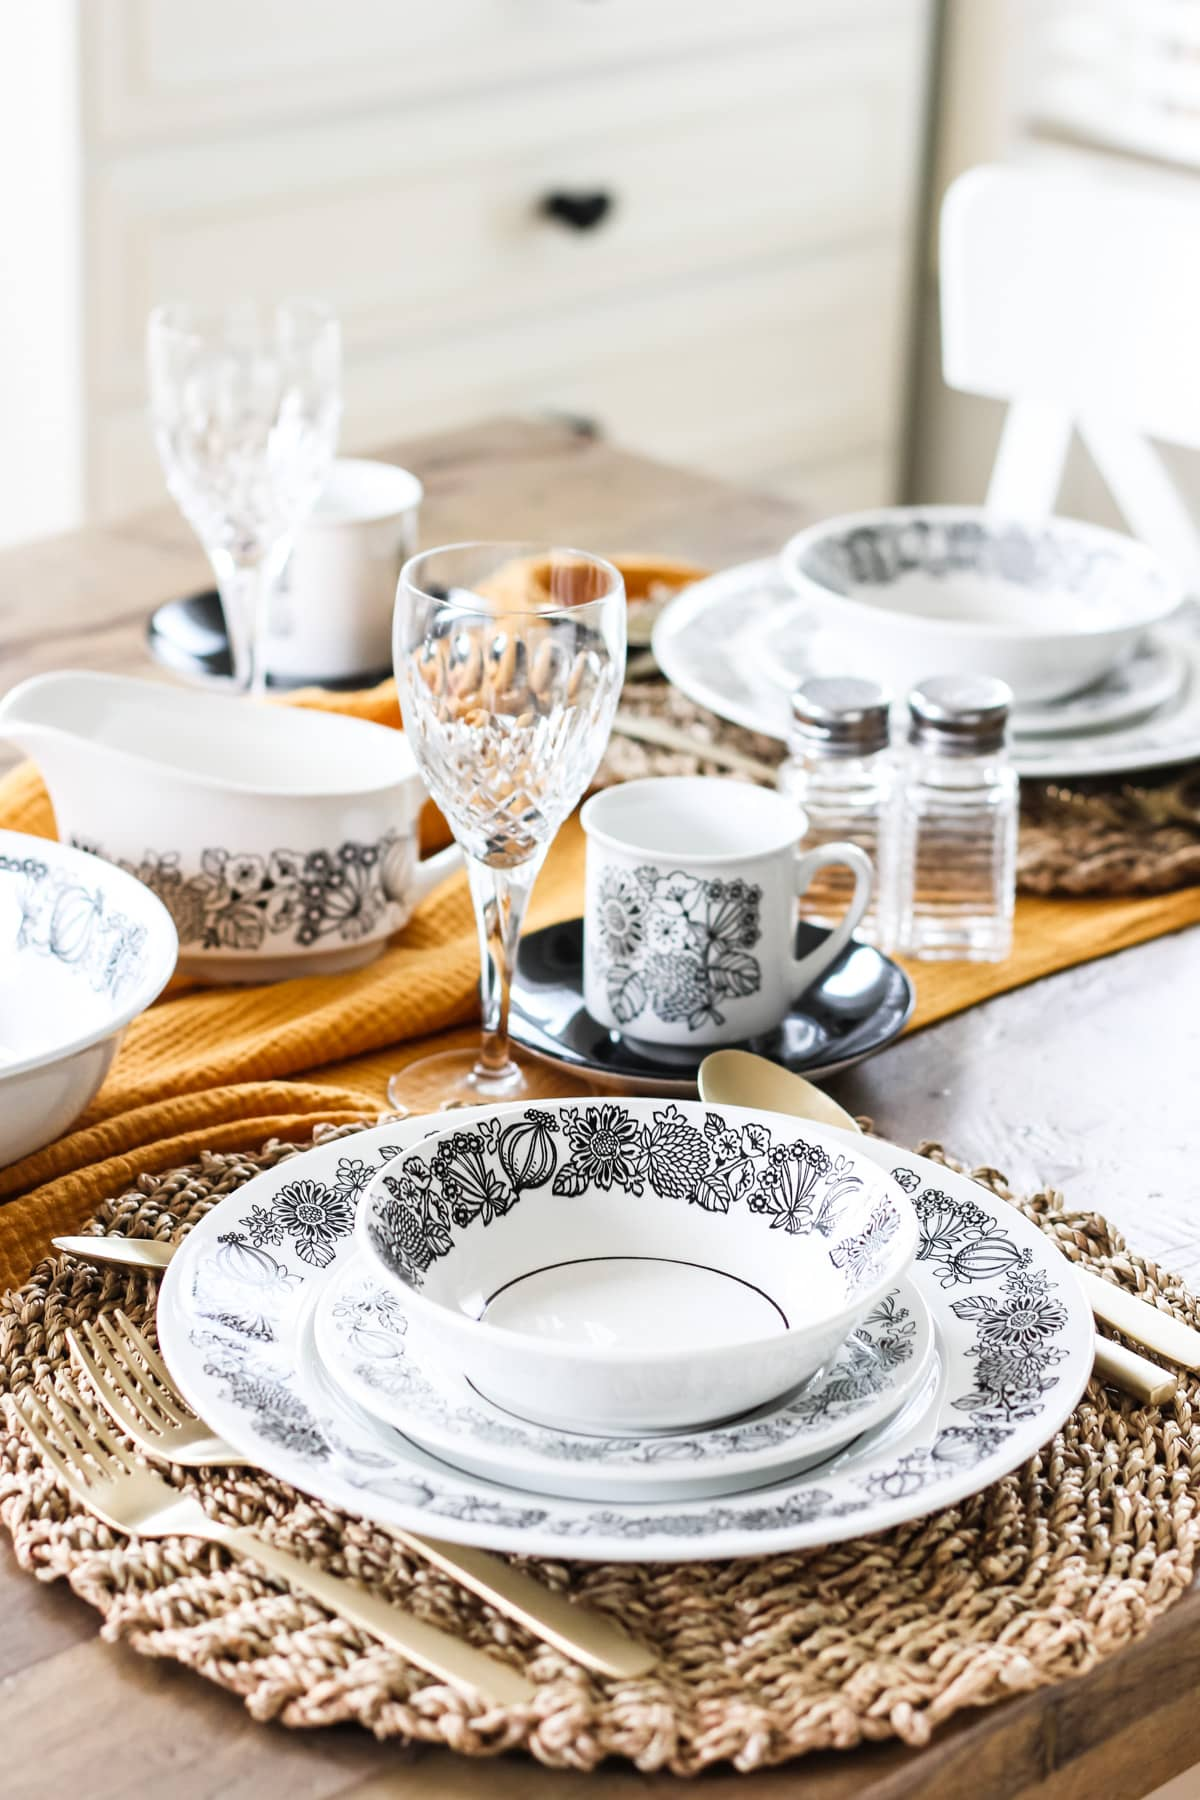 a place setting with a black and white flower patterned plate, small plate and bowl. the dishes are stacked on a woven grass place mat. in the background is a gold table runner with more dishes